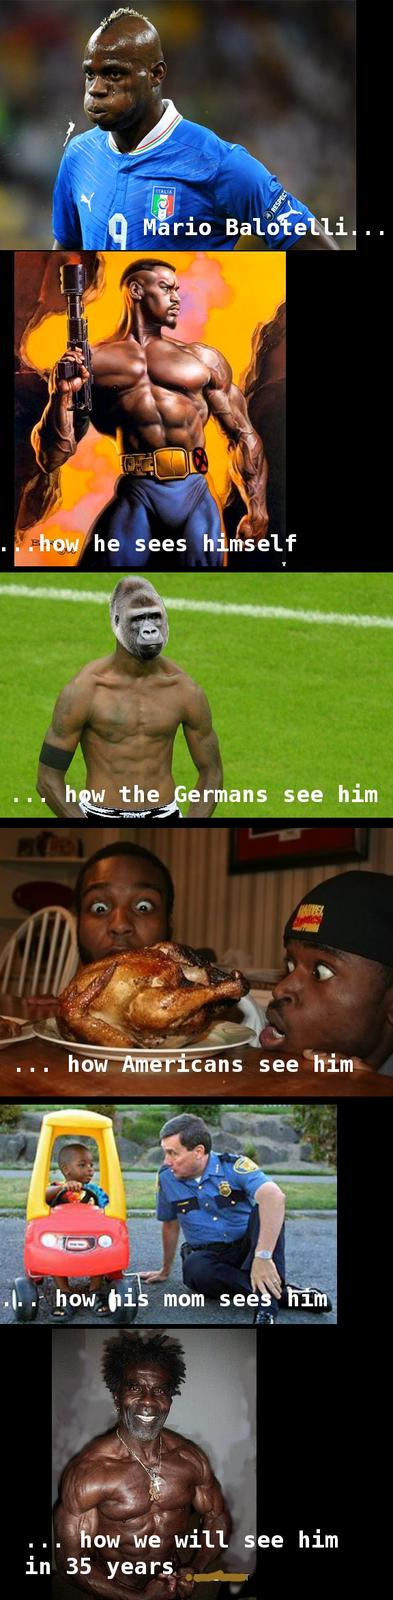 How the World sees Balotelli